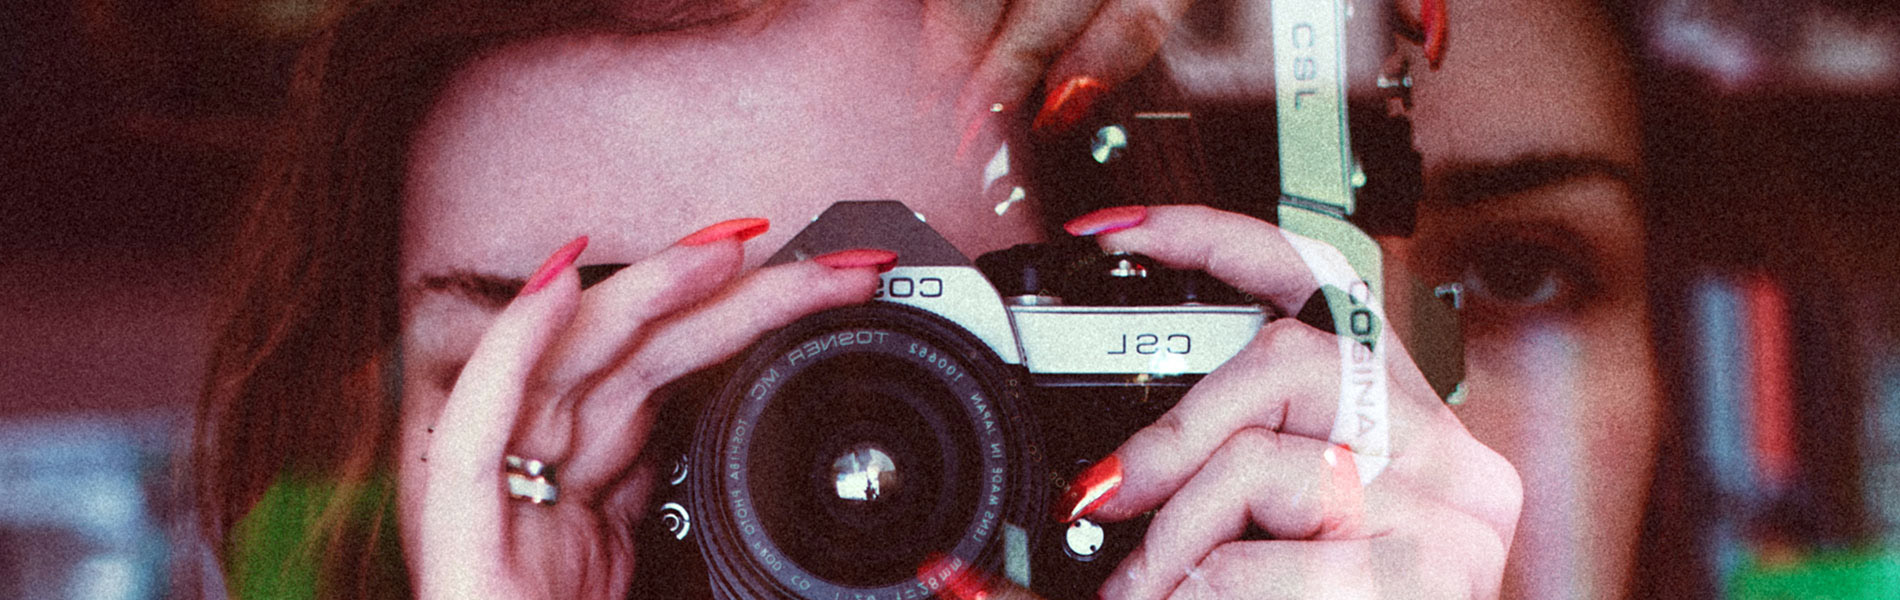 example of a double exposure of a woman taking a photo